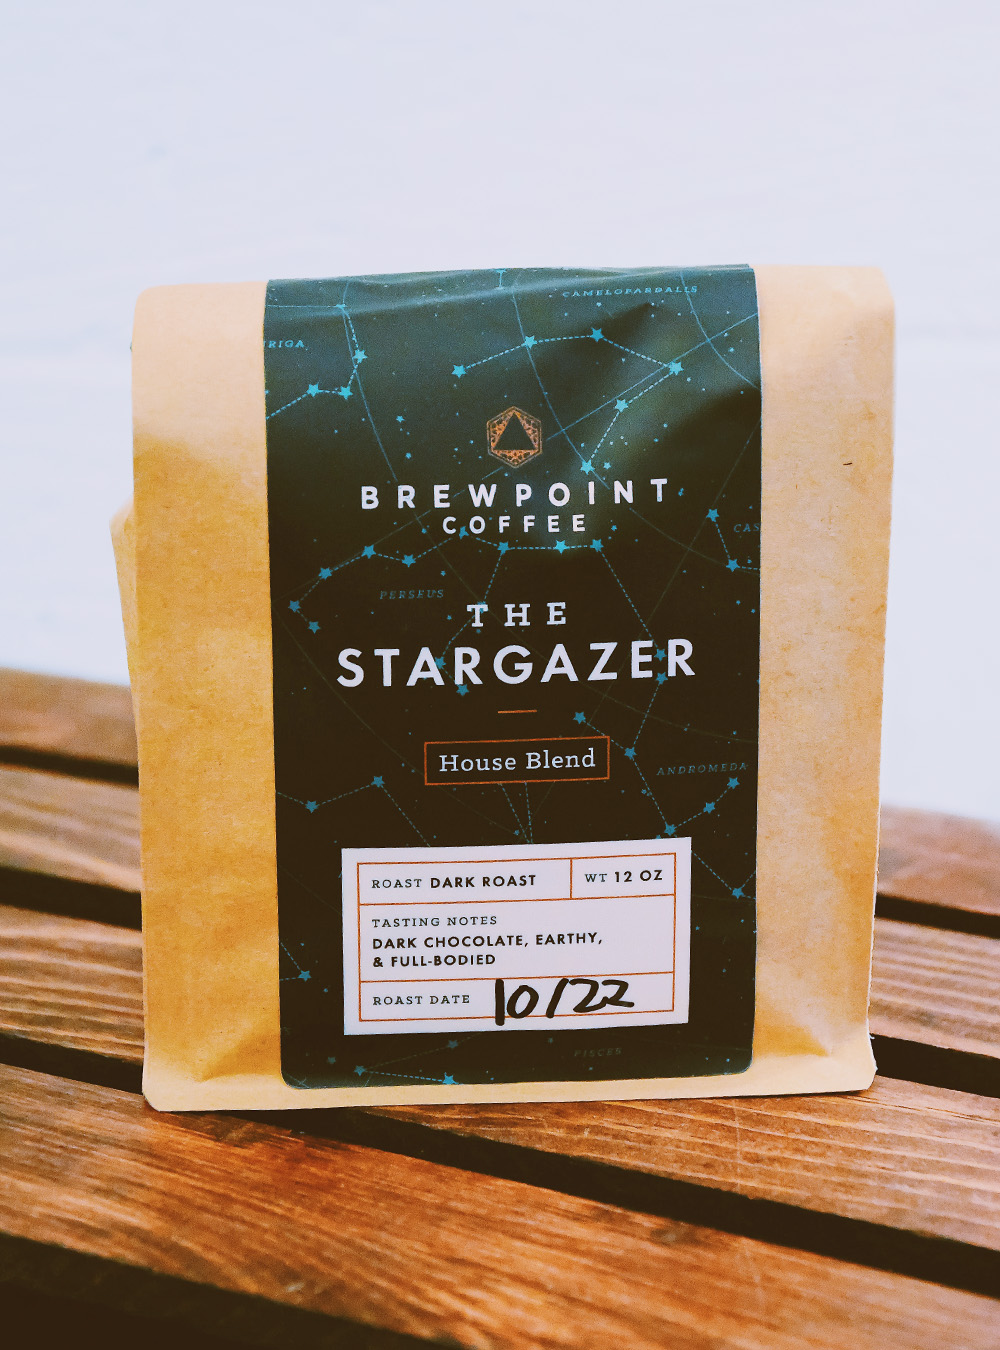 Packaging design for Brewpoint  Coffee's house blend – The Stargazer.